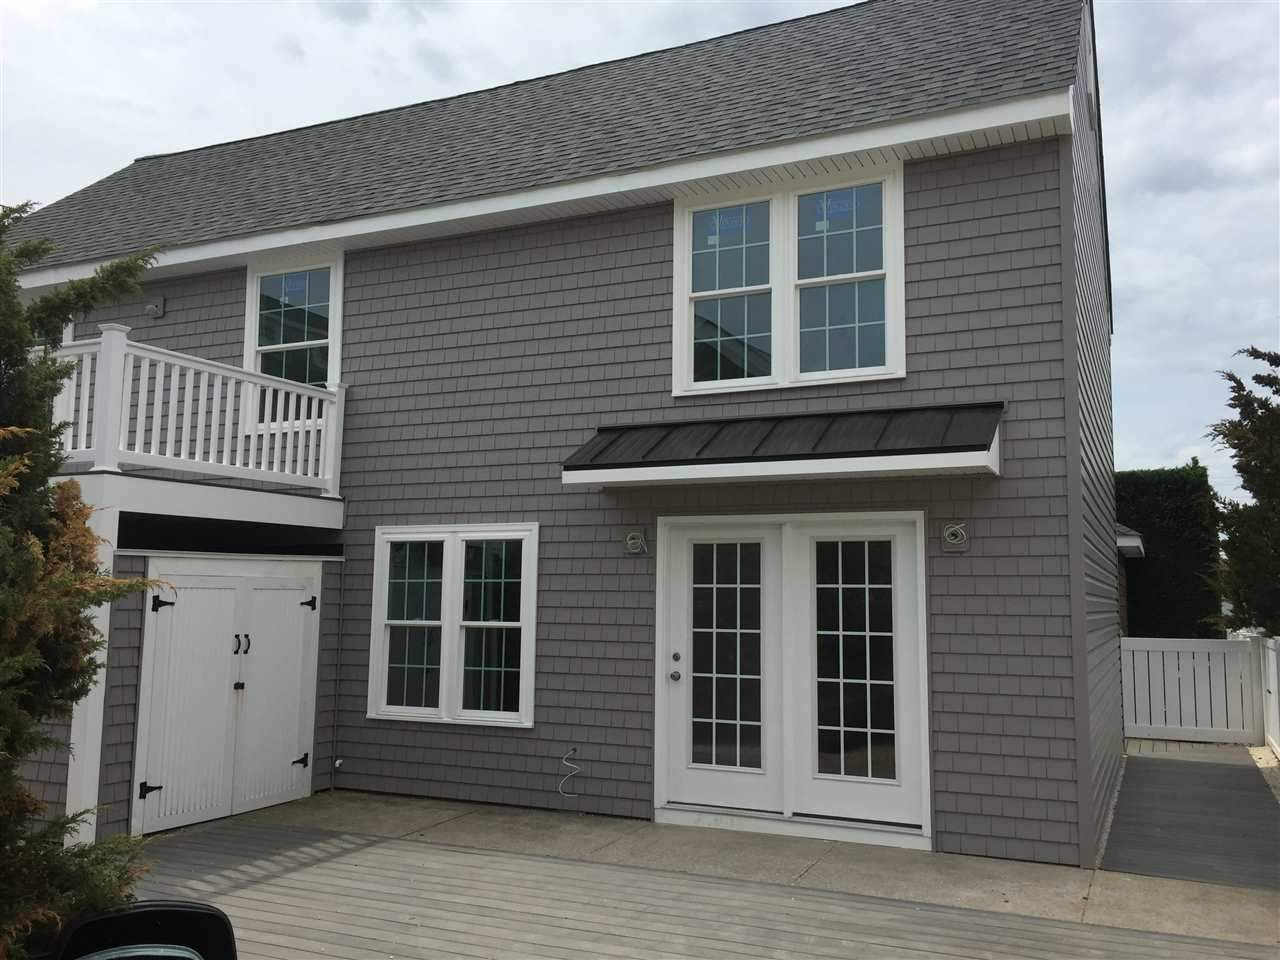 153, Unit 2 83rd, Stone Harbor